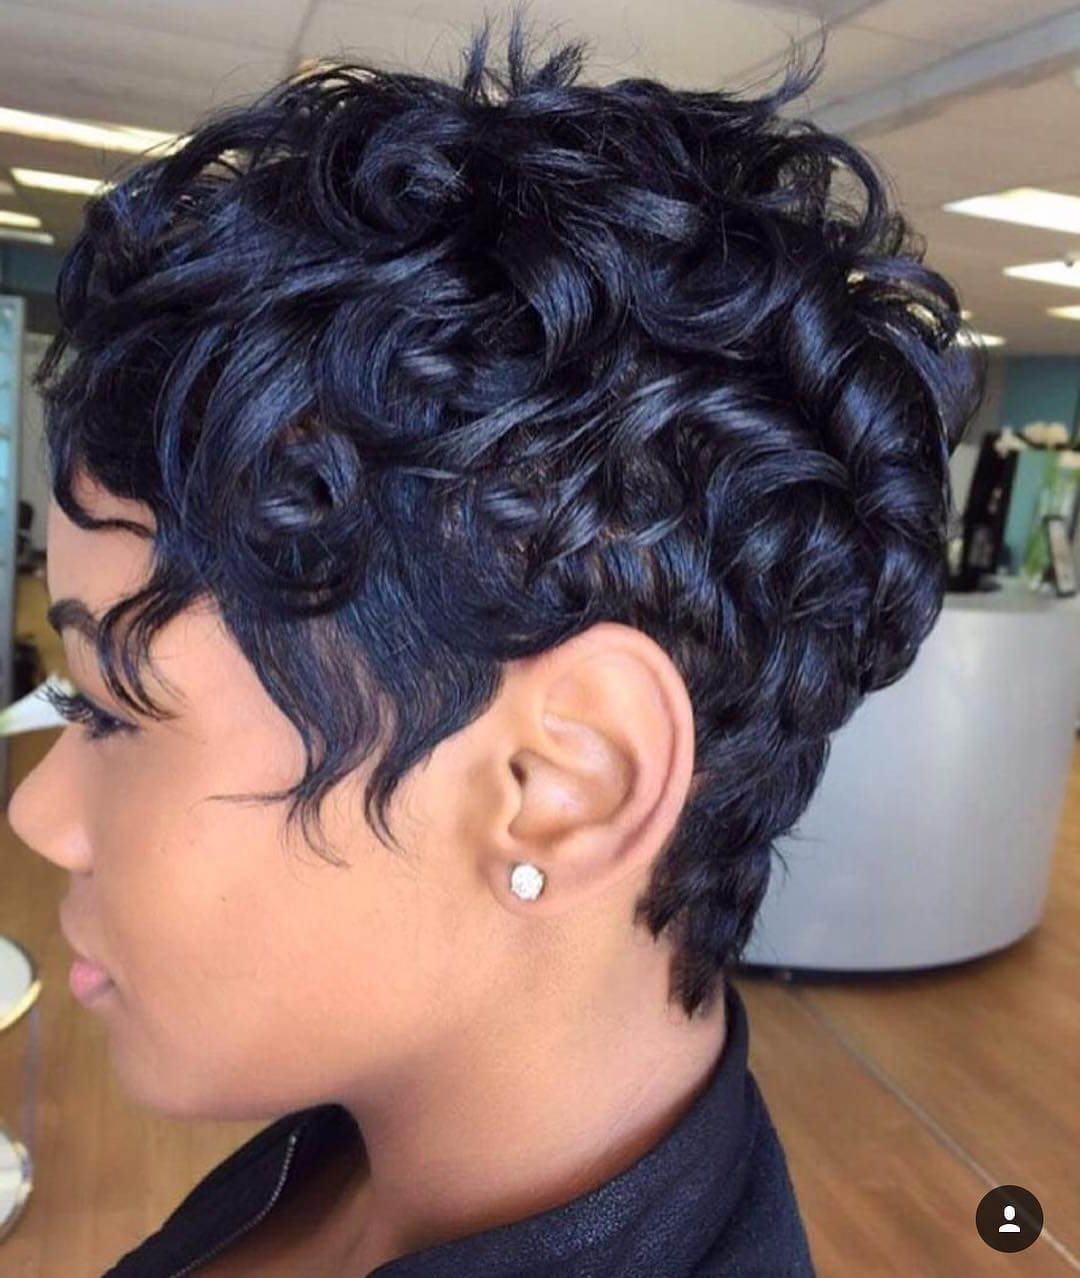 12 Curly Pixie Cut For Short Or Medium Length Hair Regarding Pixie Haircuts With Tight Curls (View 1 of 20)